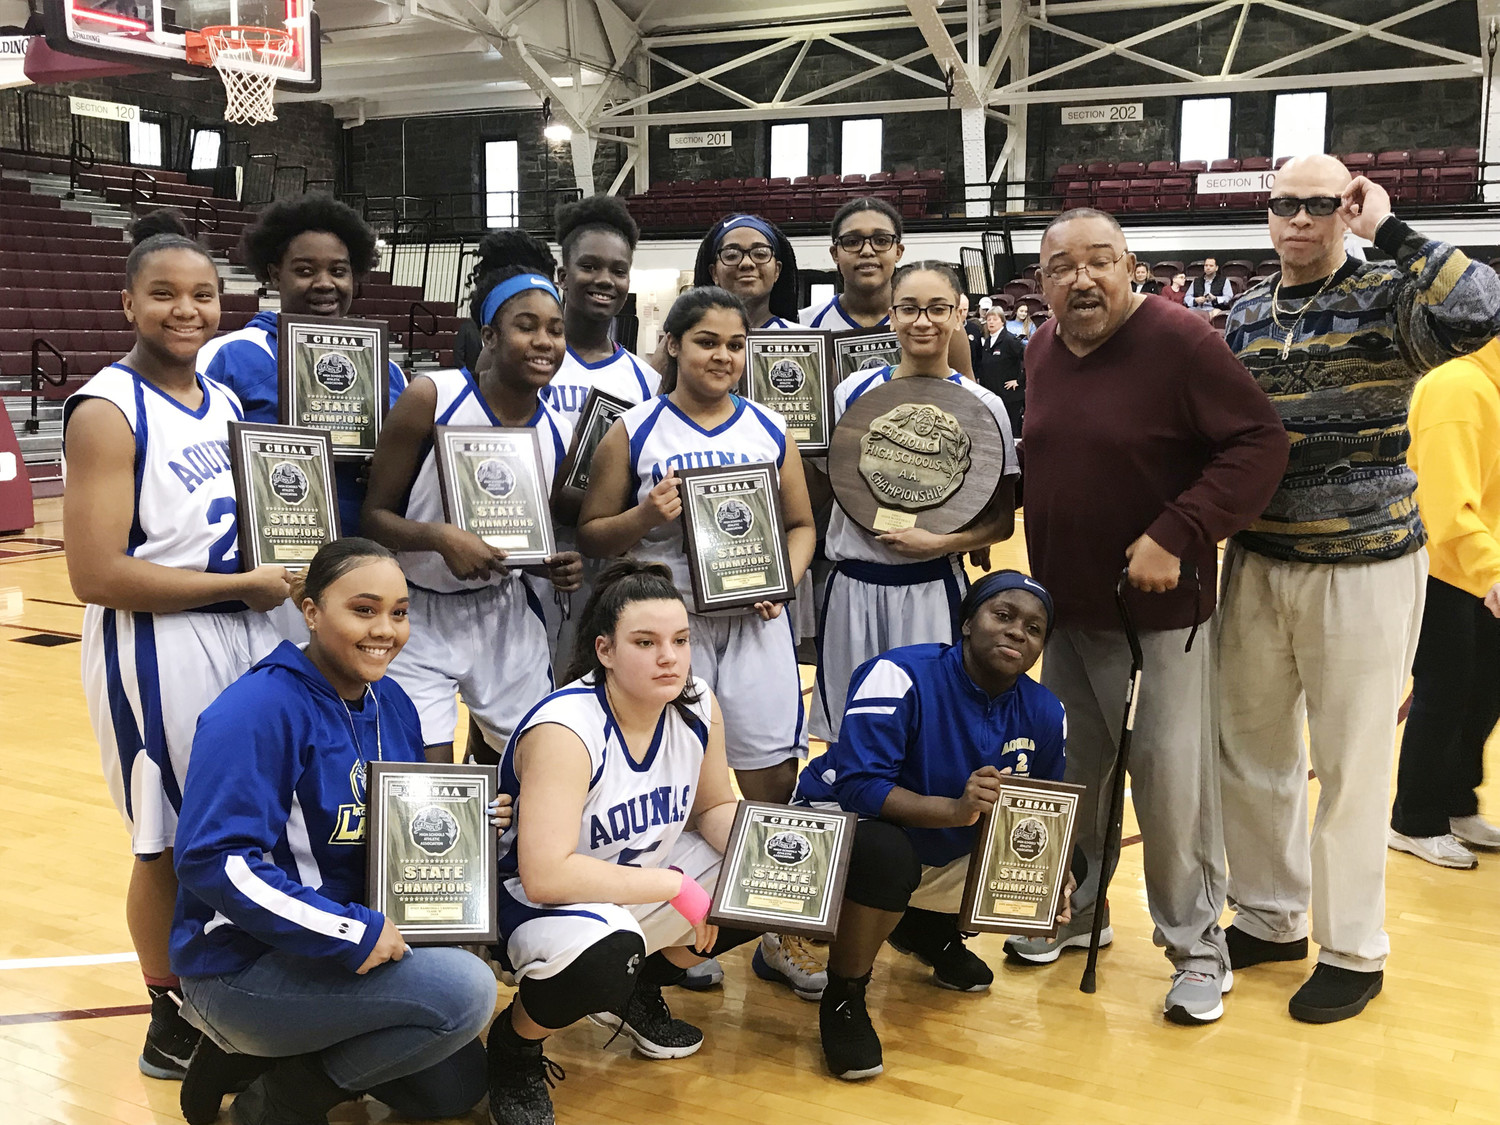 Aquinas High School girls' basketball players hold their individual and team championship plaques after winning a second consecutive CHSAA B state championship with a 69-43 victory over St. Dominic at Fordham University March 10. The Lady Bears will compete in the state federation tournament in Glens Falls March 23-25.